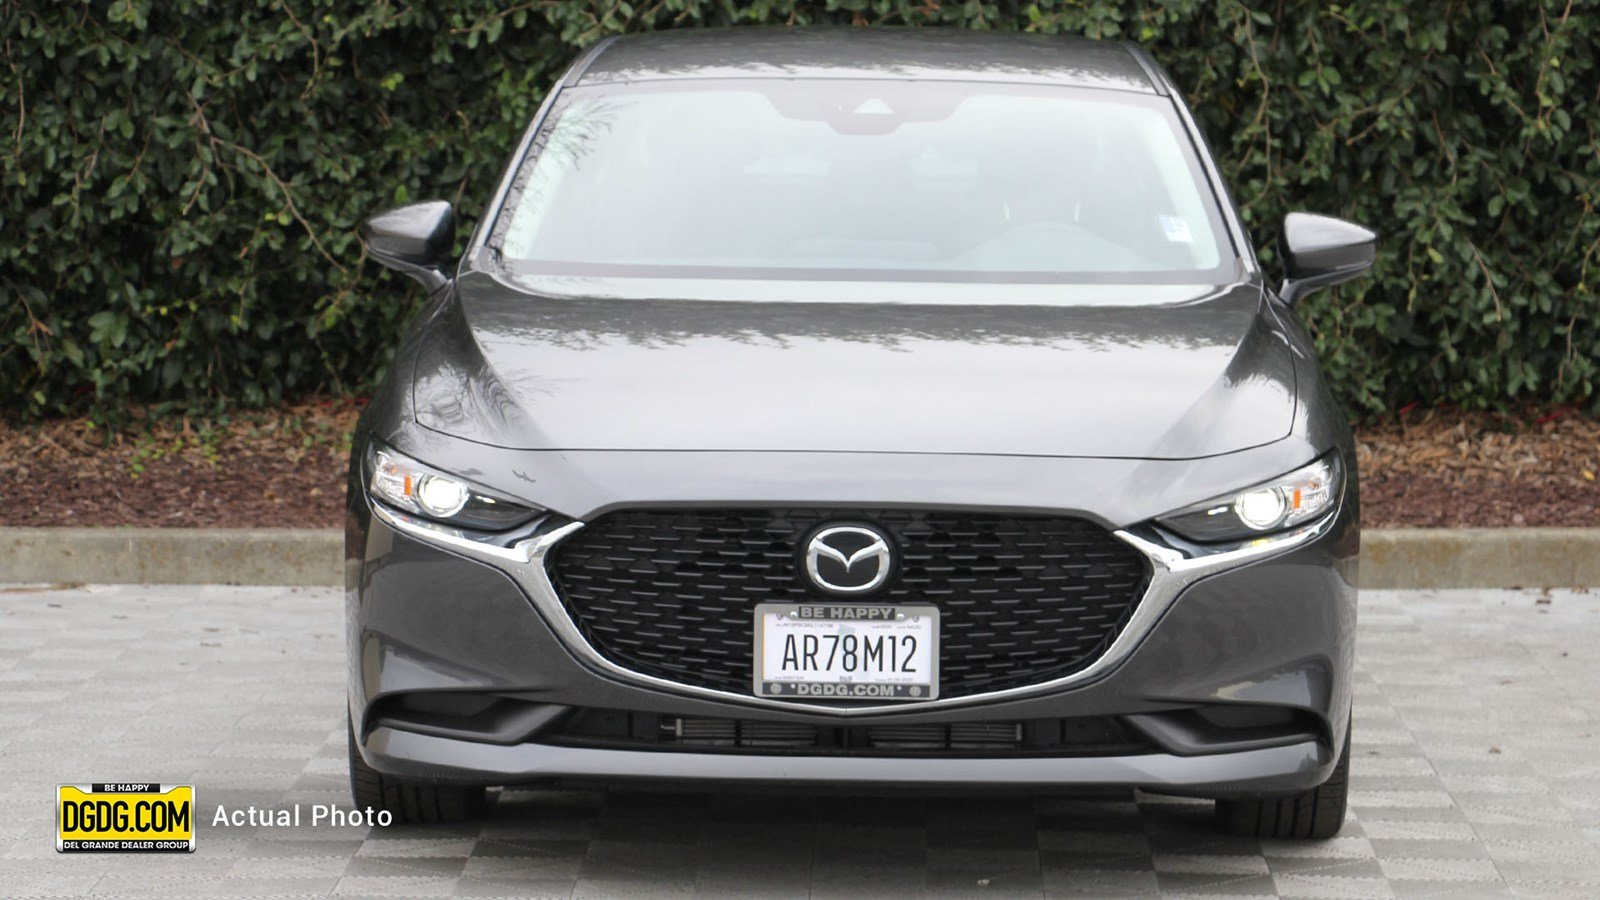 Certified Pre-Owned 2020 Mazda3 w/Select Pkg